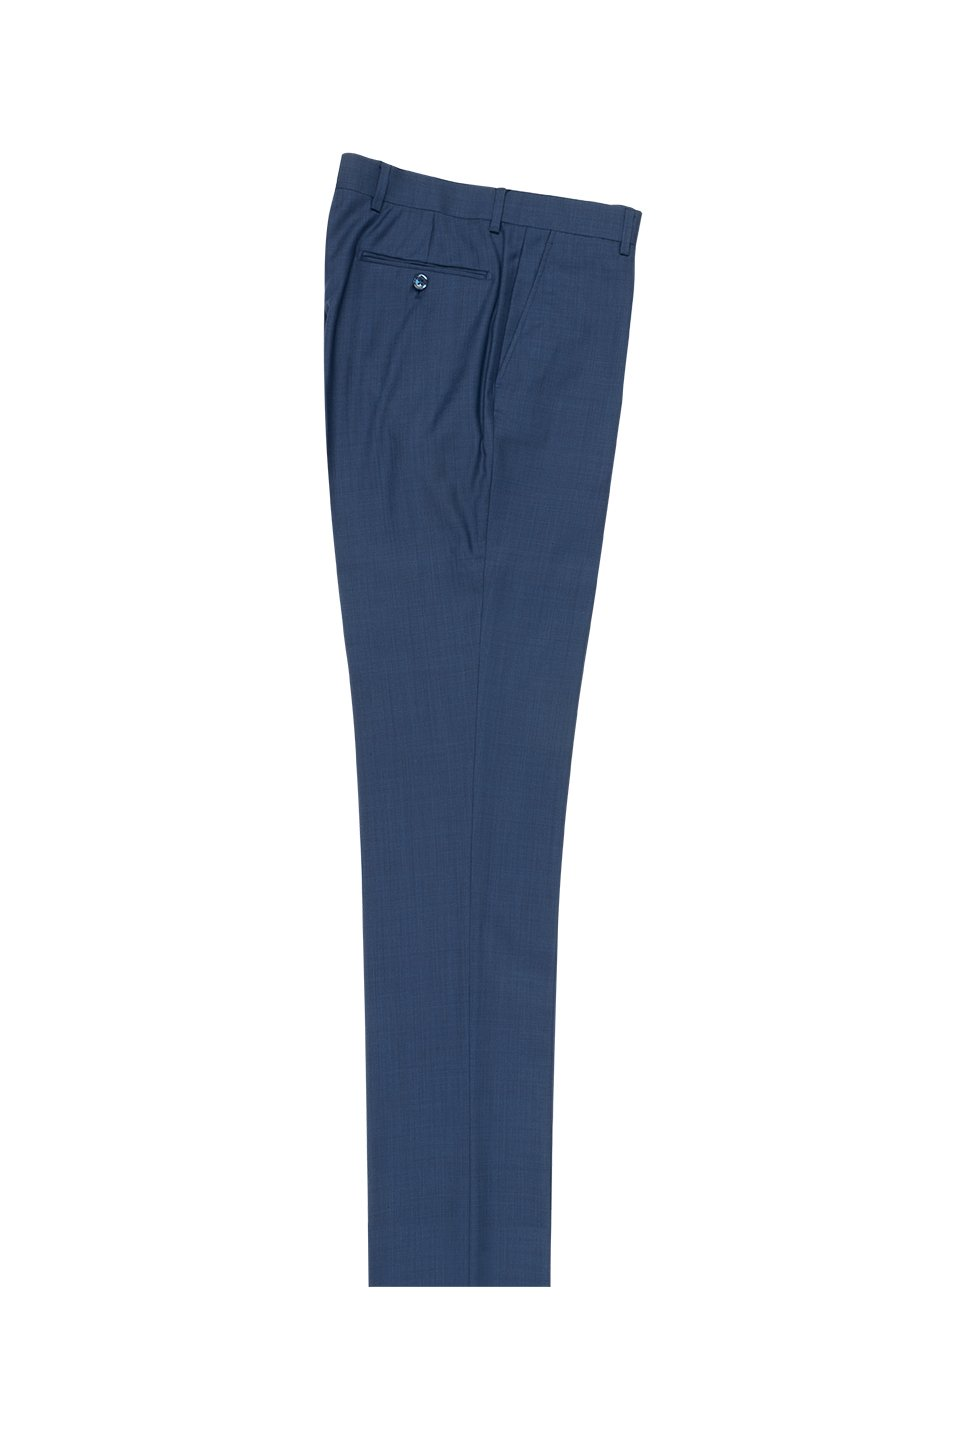 Tiglio New Blue Solid Flat Front Slim Fit Dress Pants